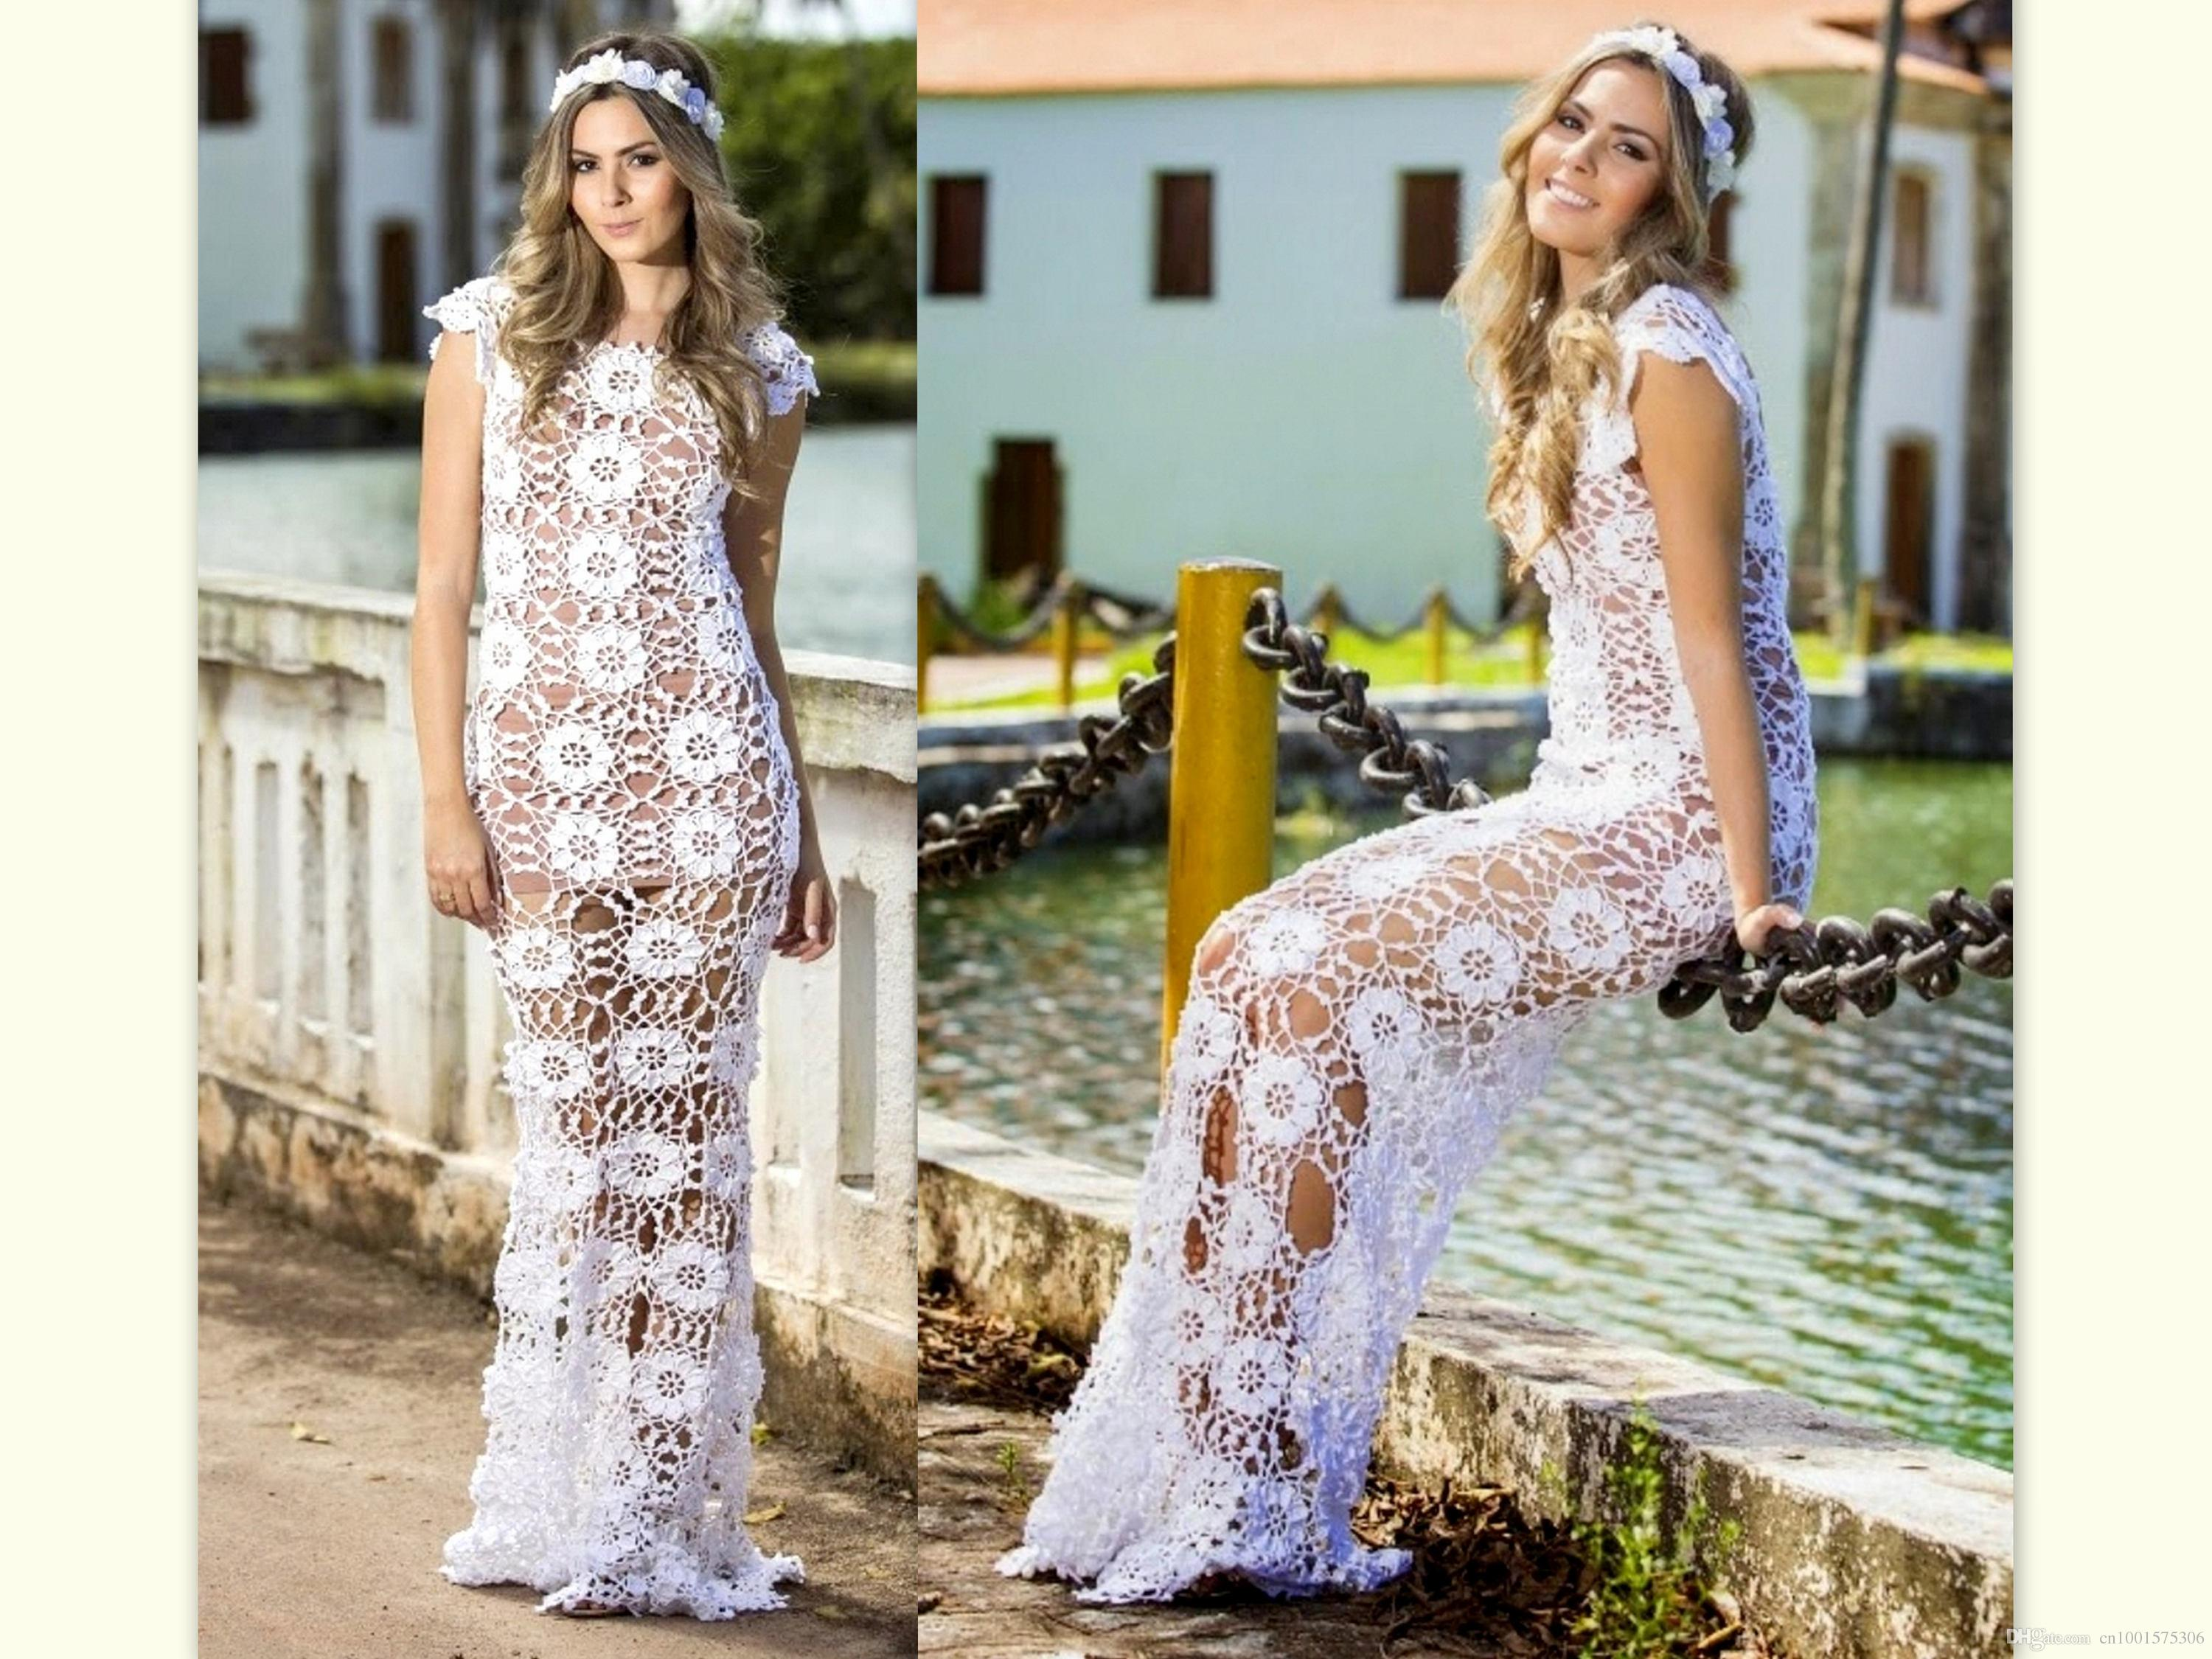 20425c516825 2019 Boho Bohemian Beach Wedding Dress White Macrame Bridal Gown A Line  Long Rustic Forest Fairy Wedding Destination Personalized Custom Dresses  From ...